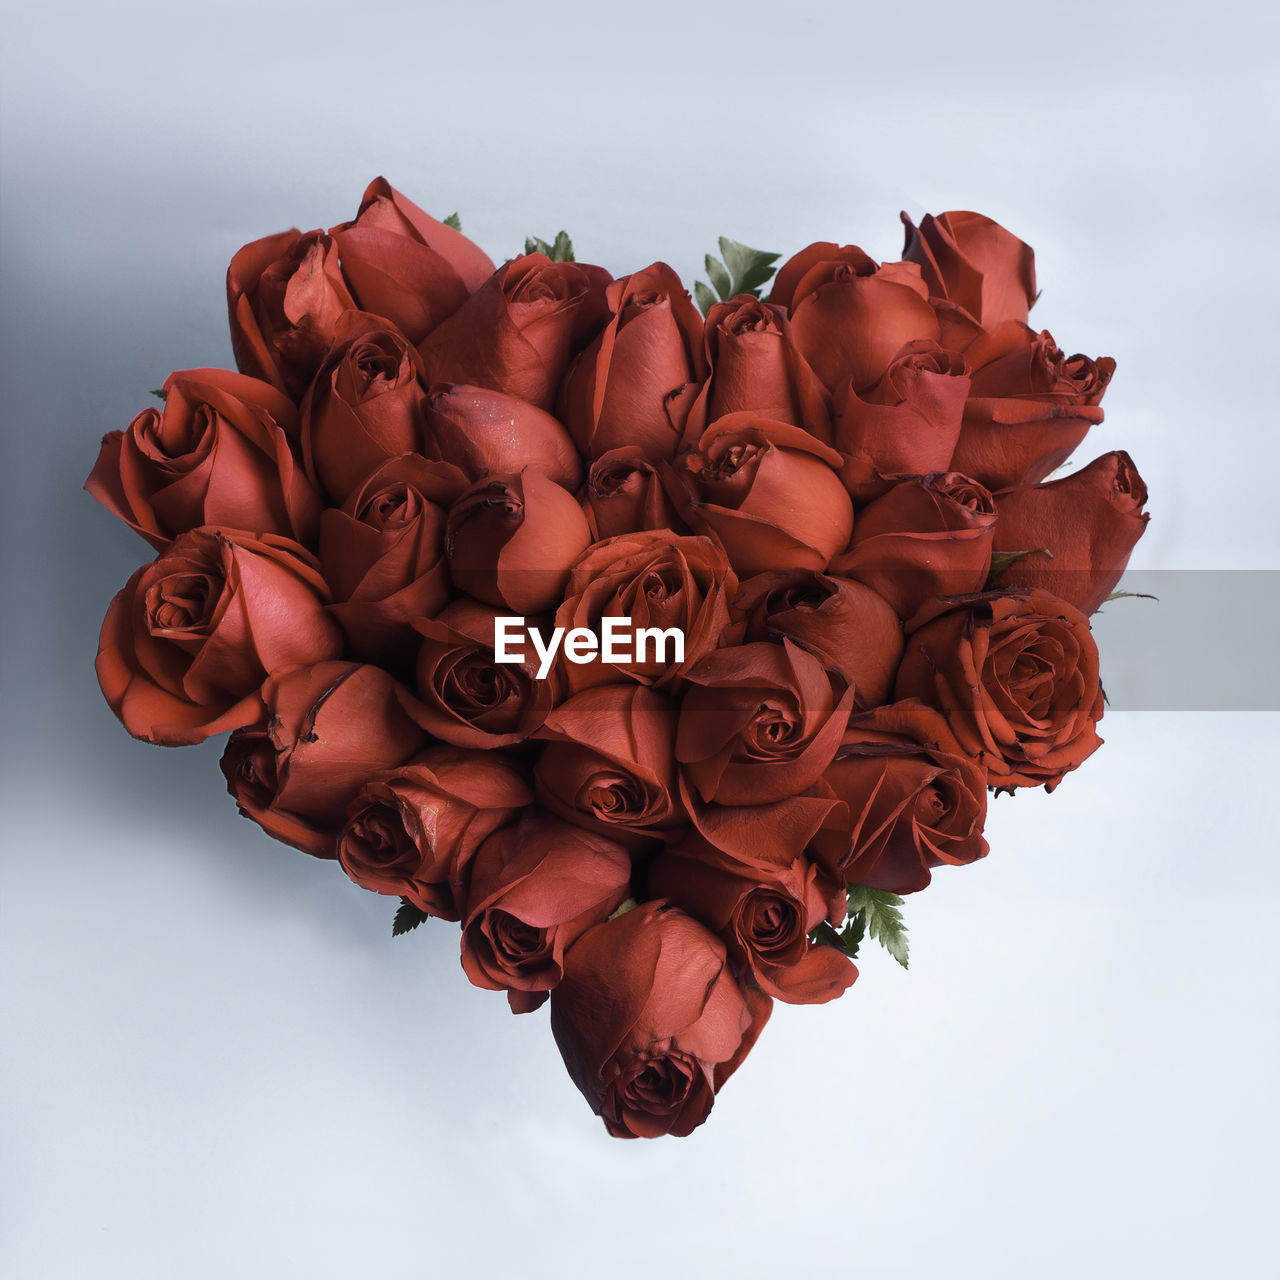 flower, beauty in nature, rose, flowering plant, close-up, nature, rose - flower, plant, freshness, petal, flower head, vulnerability, inflorescence, fragility, red, no people, indoors, studio shot, white background, sky, flower arrangement, bouquet